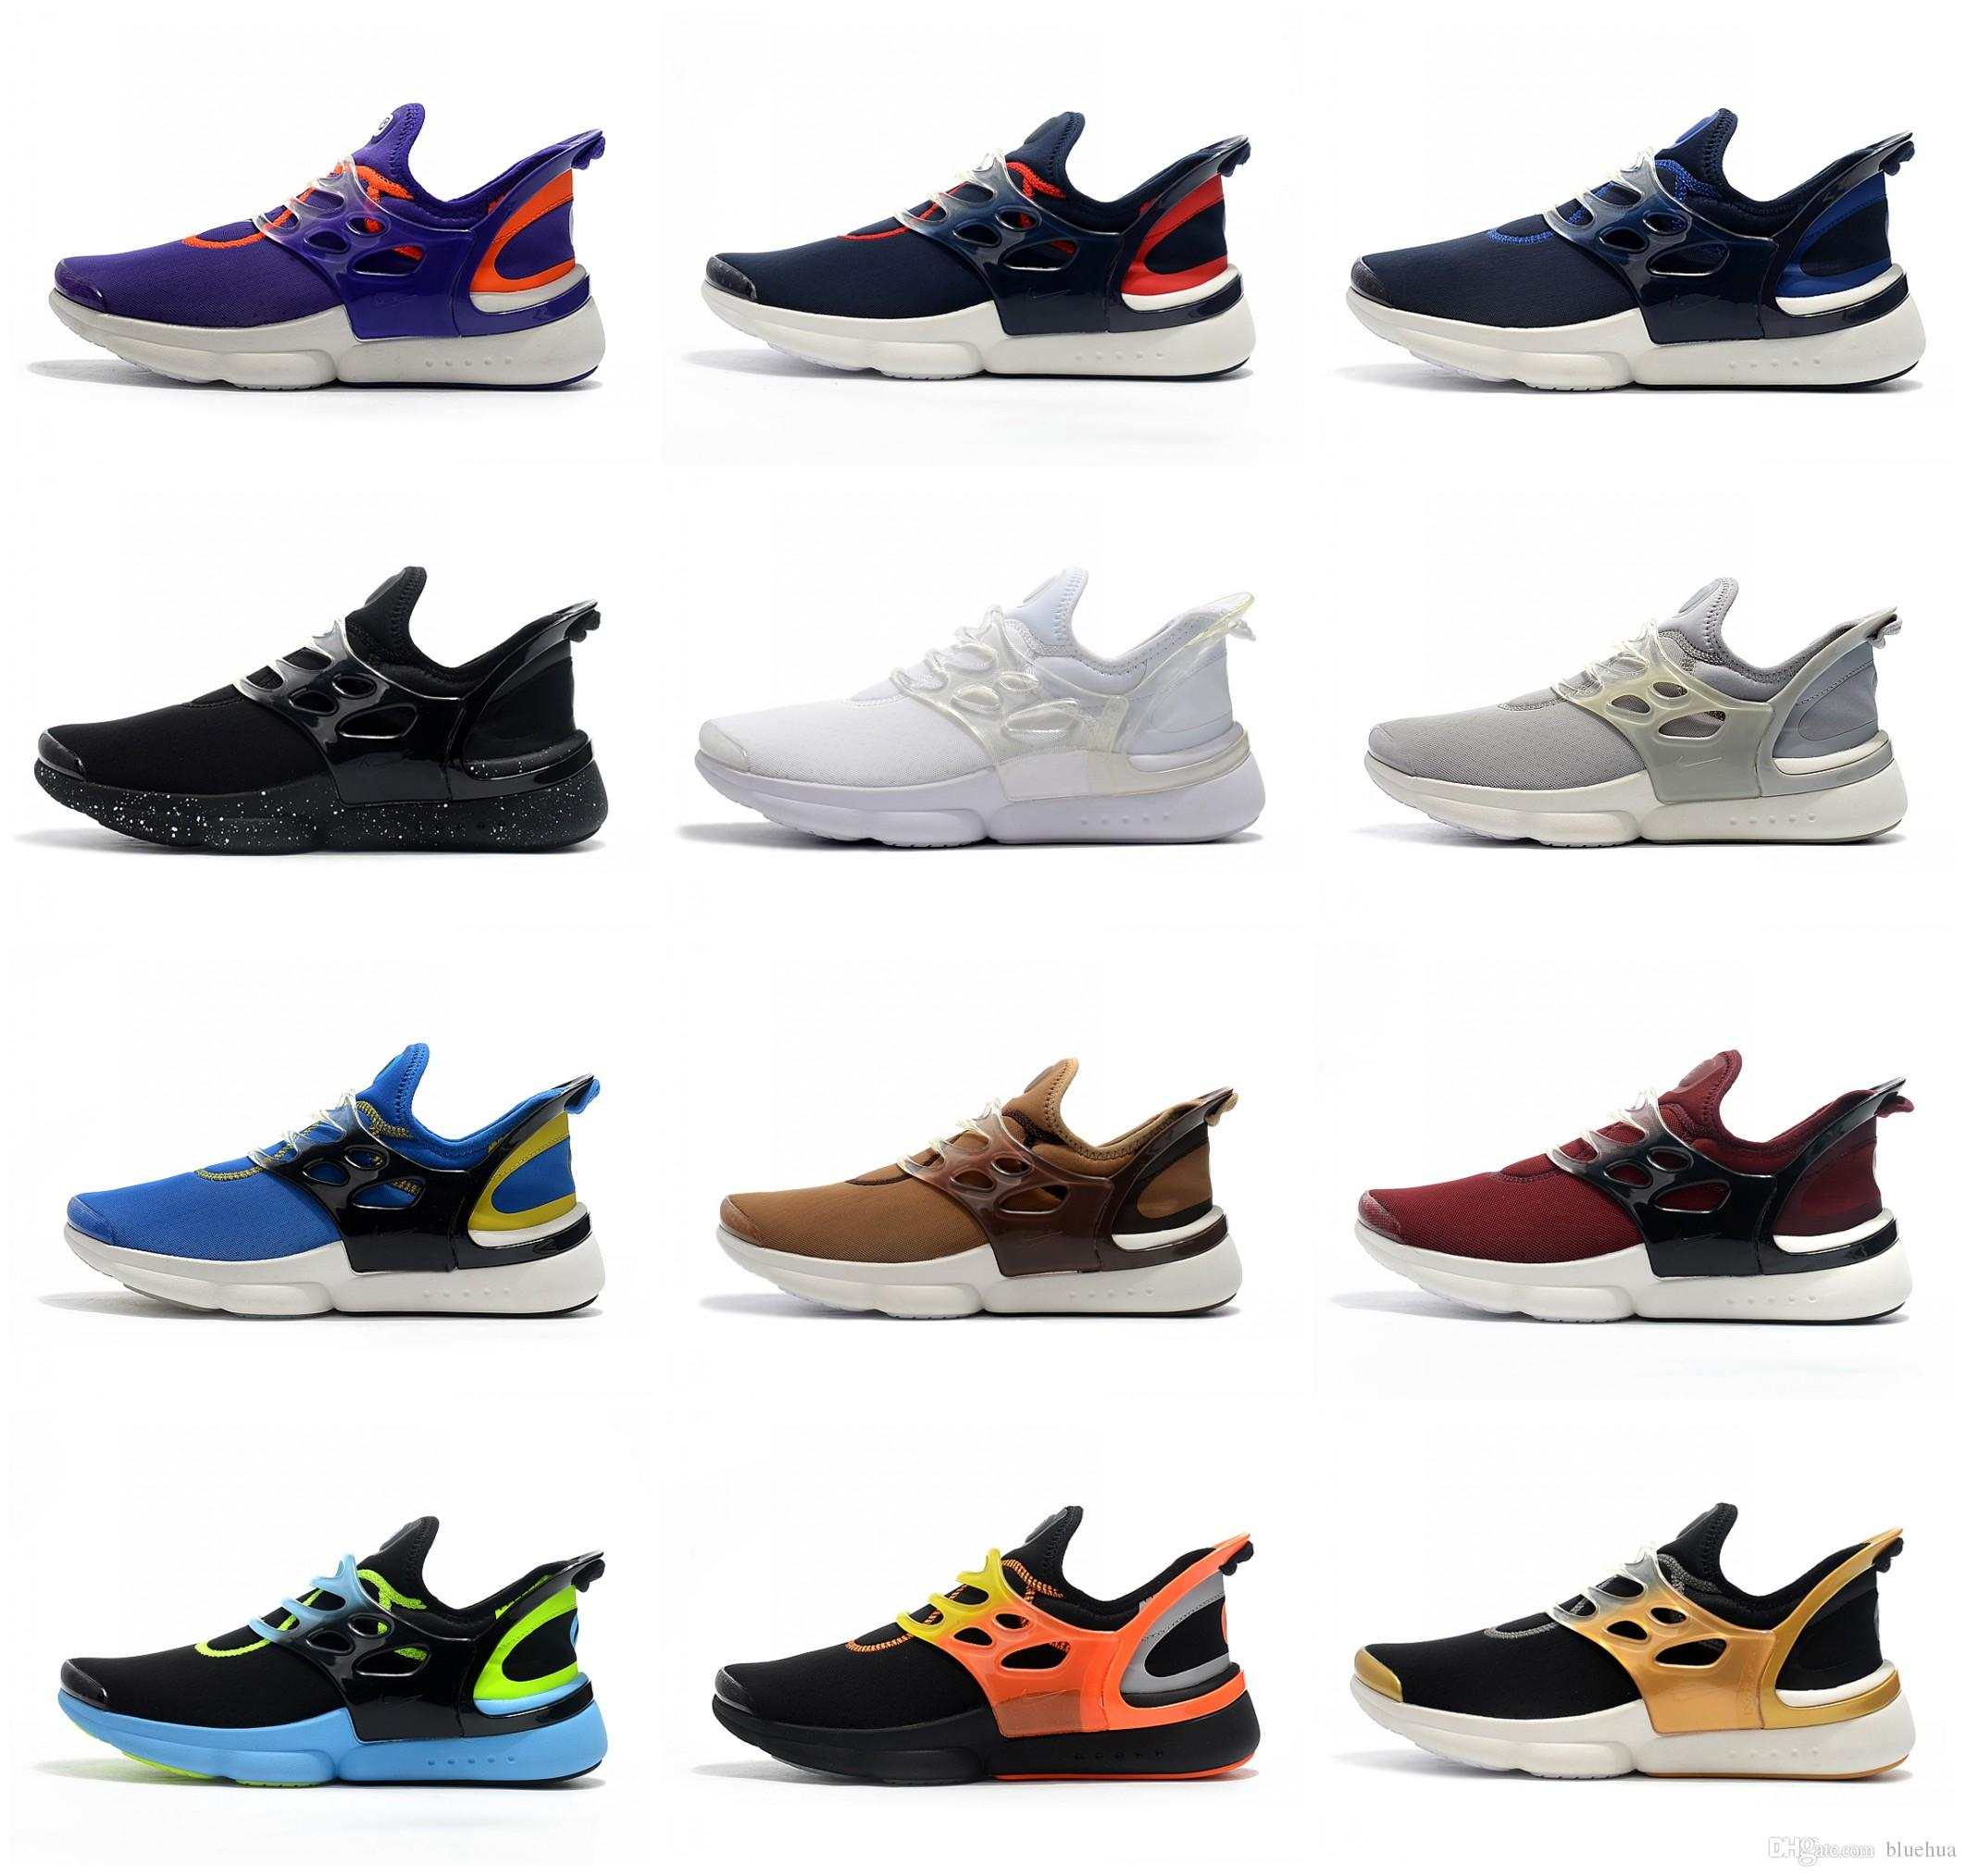 b631d6b8642 2019 2018 New Running Shoes Presto Faze Hypergate GS 6 VI Outdoor Snearkers Mens  Shoes Free Shopping Black White Blue Sports Shoes From Bluehua